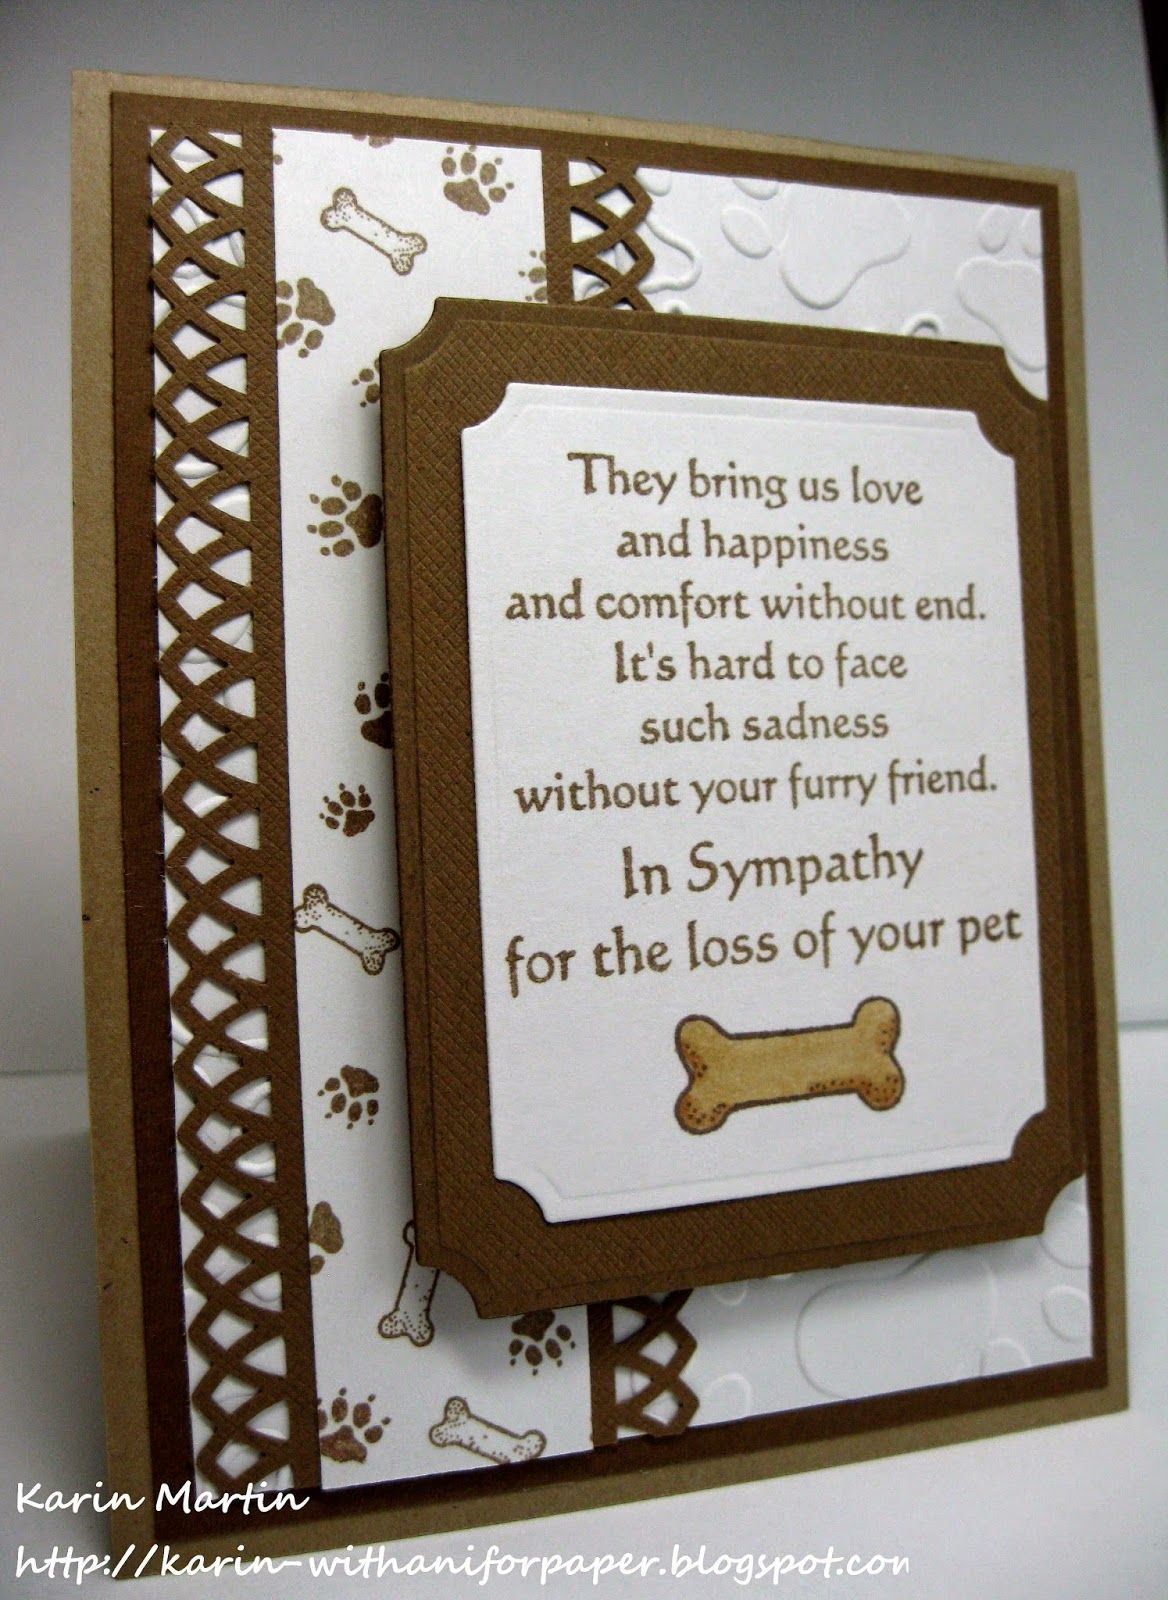 Drs designs rubber stamps with sympathy sympathy cards drs designs rubber stamps with sympathy kristyandbryce Choice Image